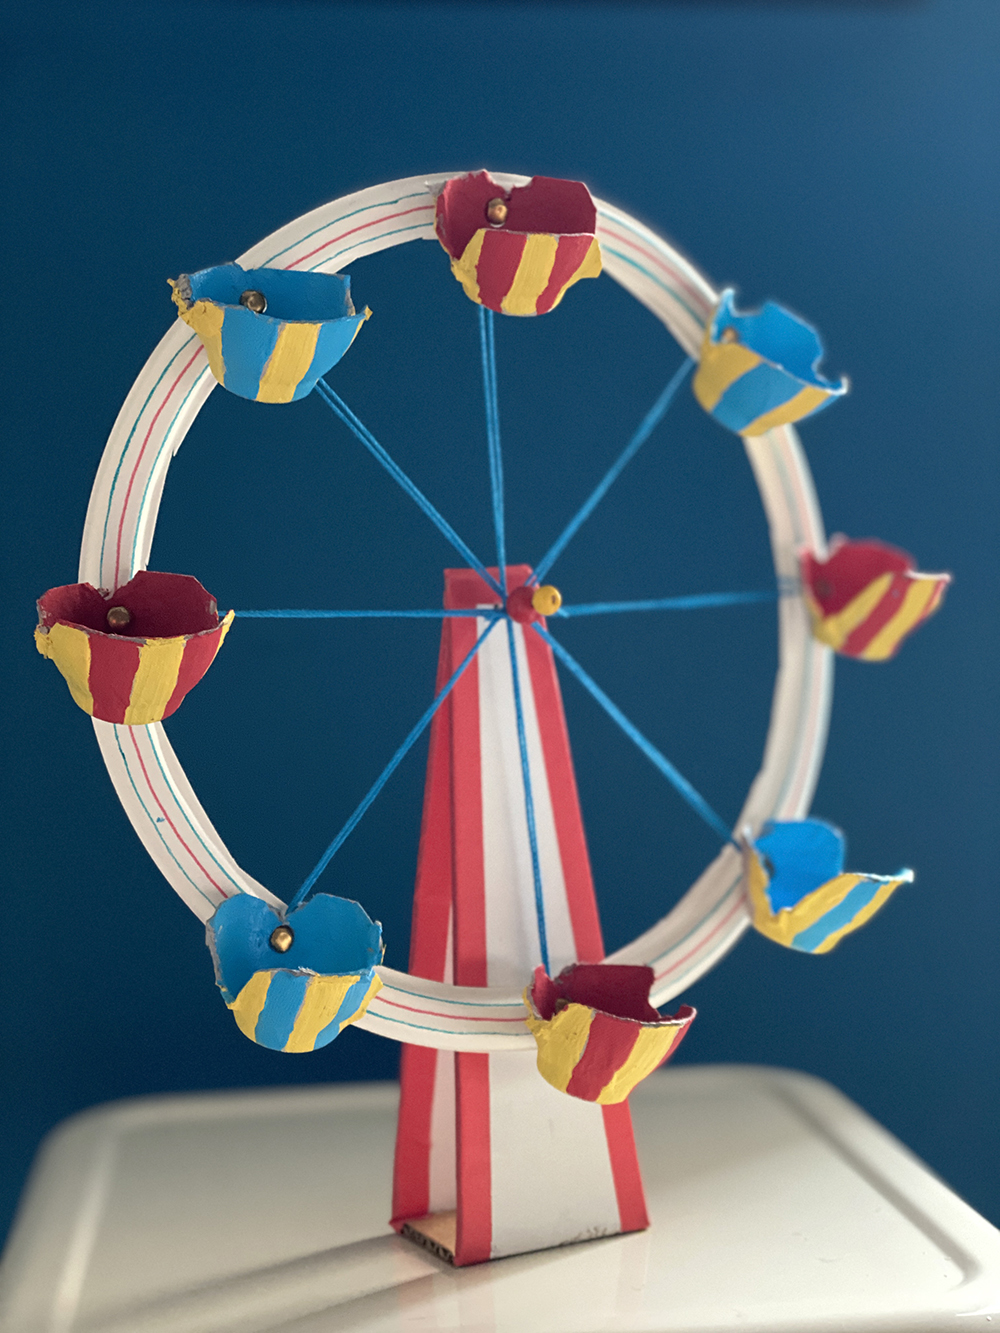 Modelo Wonder Wheel creado por Amanda Kingloff, fundadora de PROJECT KID